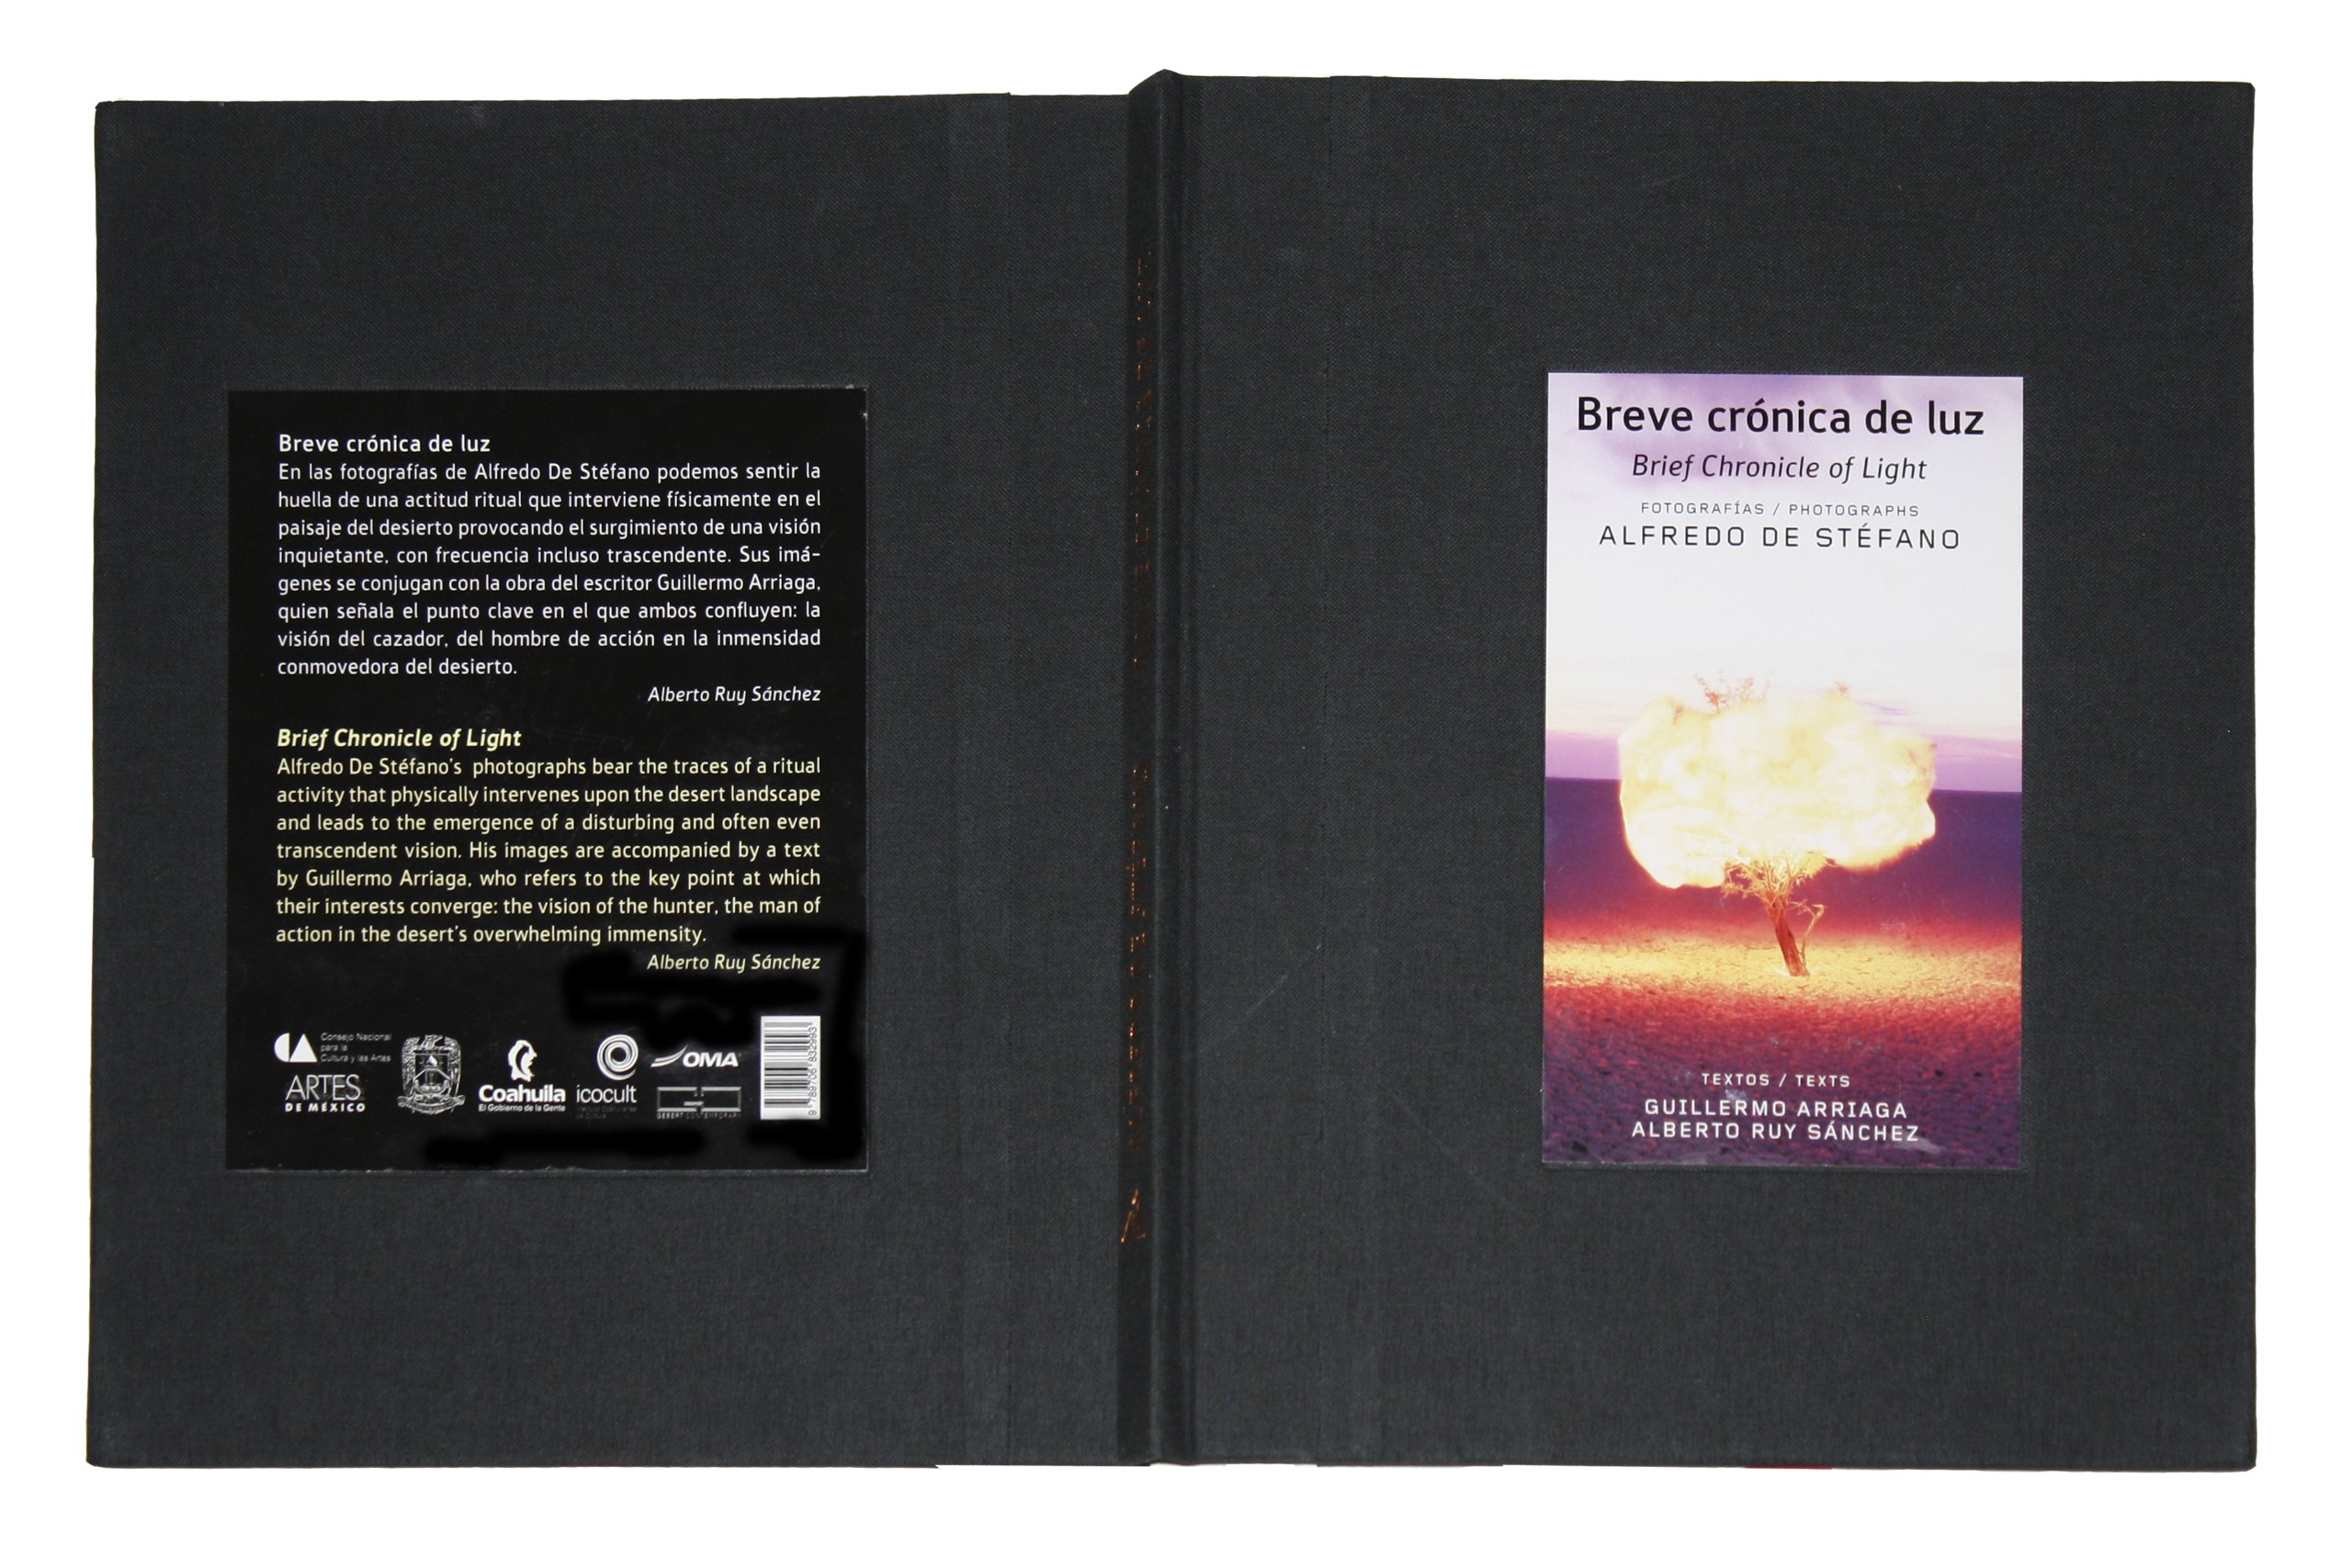 Breve cronica de luz (Brief Chronicle of Light) (Spanish Edition): Guillermo Arriaga, Alfredo De Stefano, Alberto RUY-SANCHEZ: 9789706832993: Amazon.com: ...